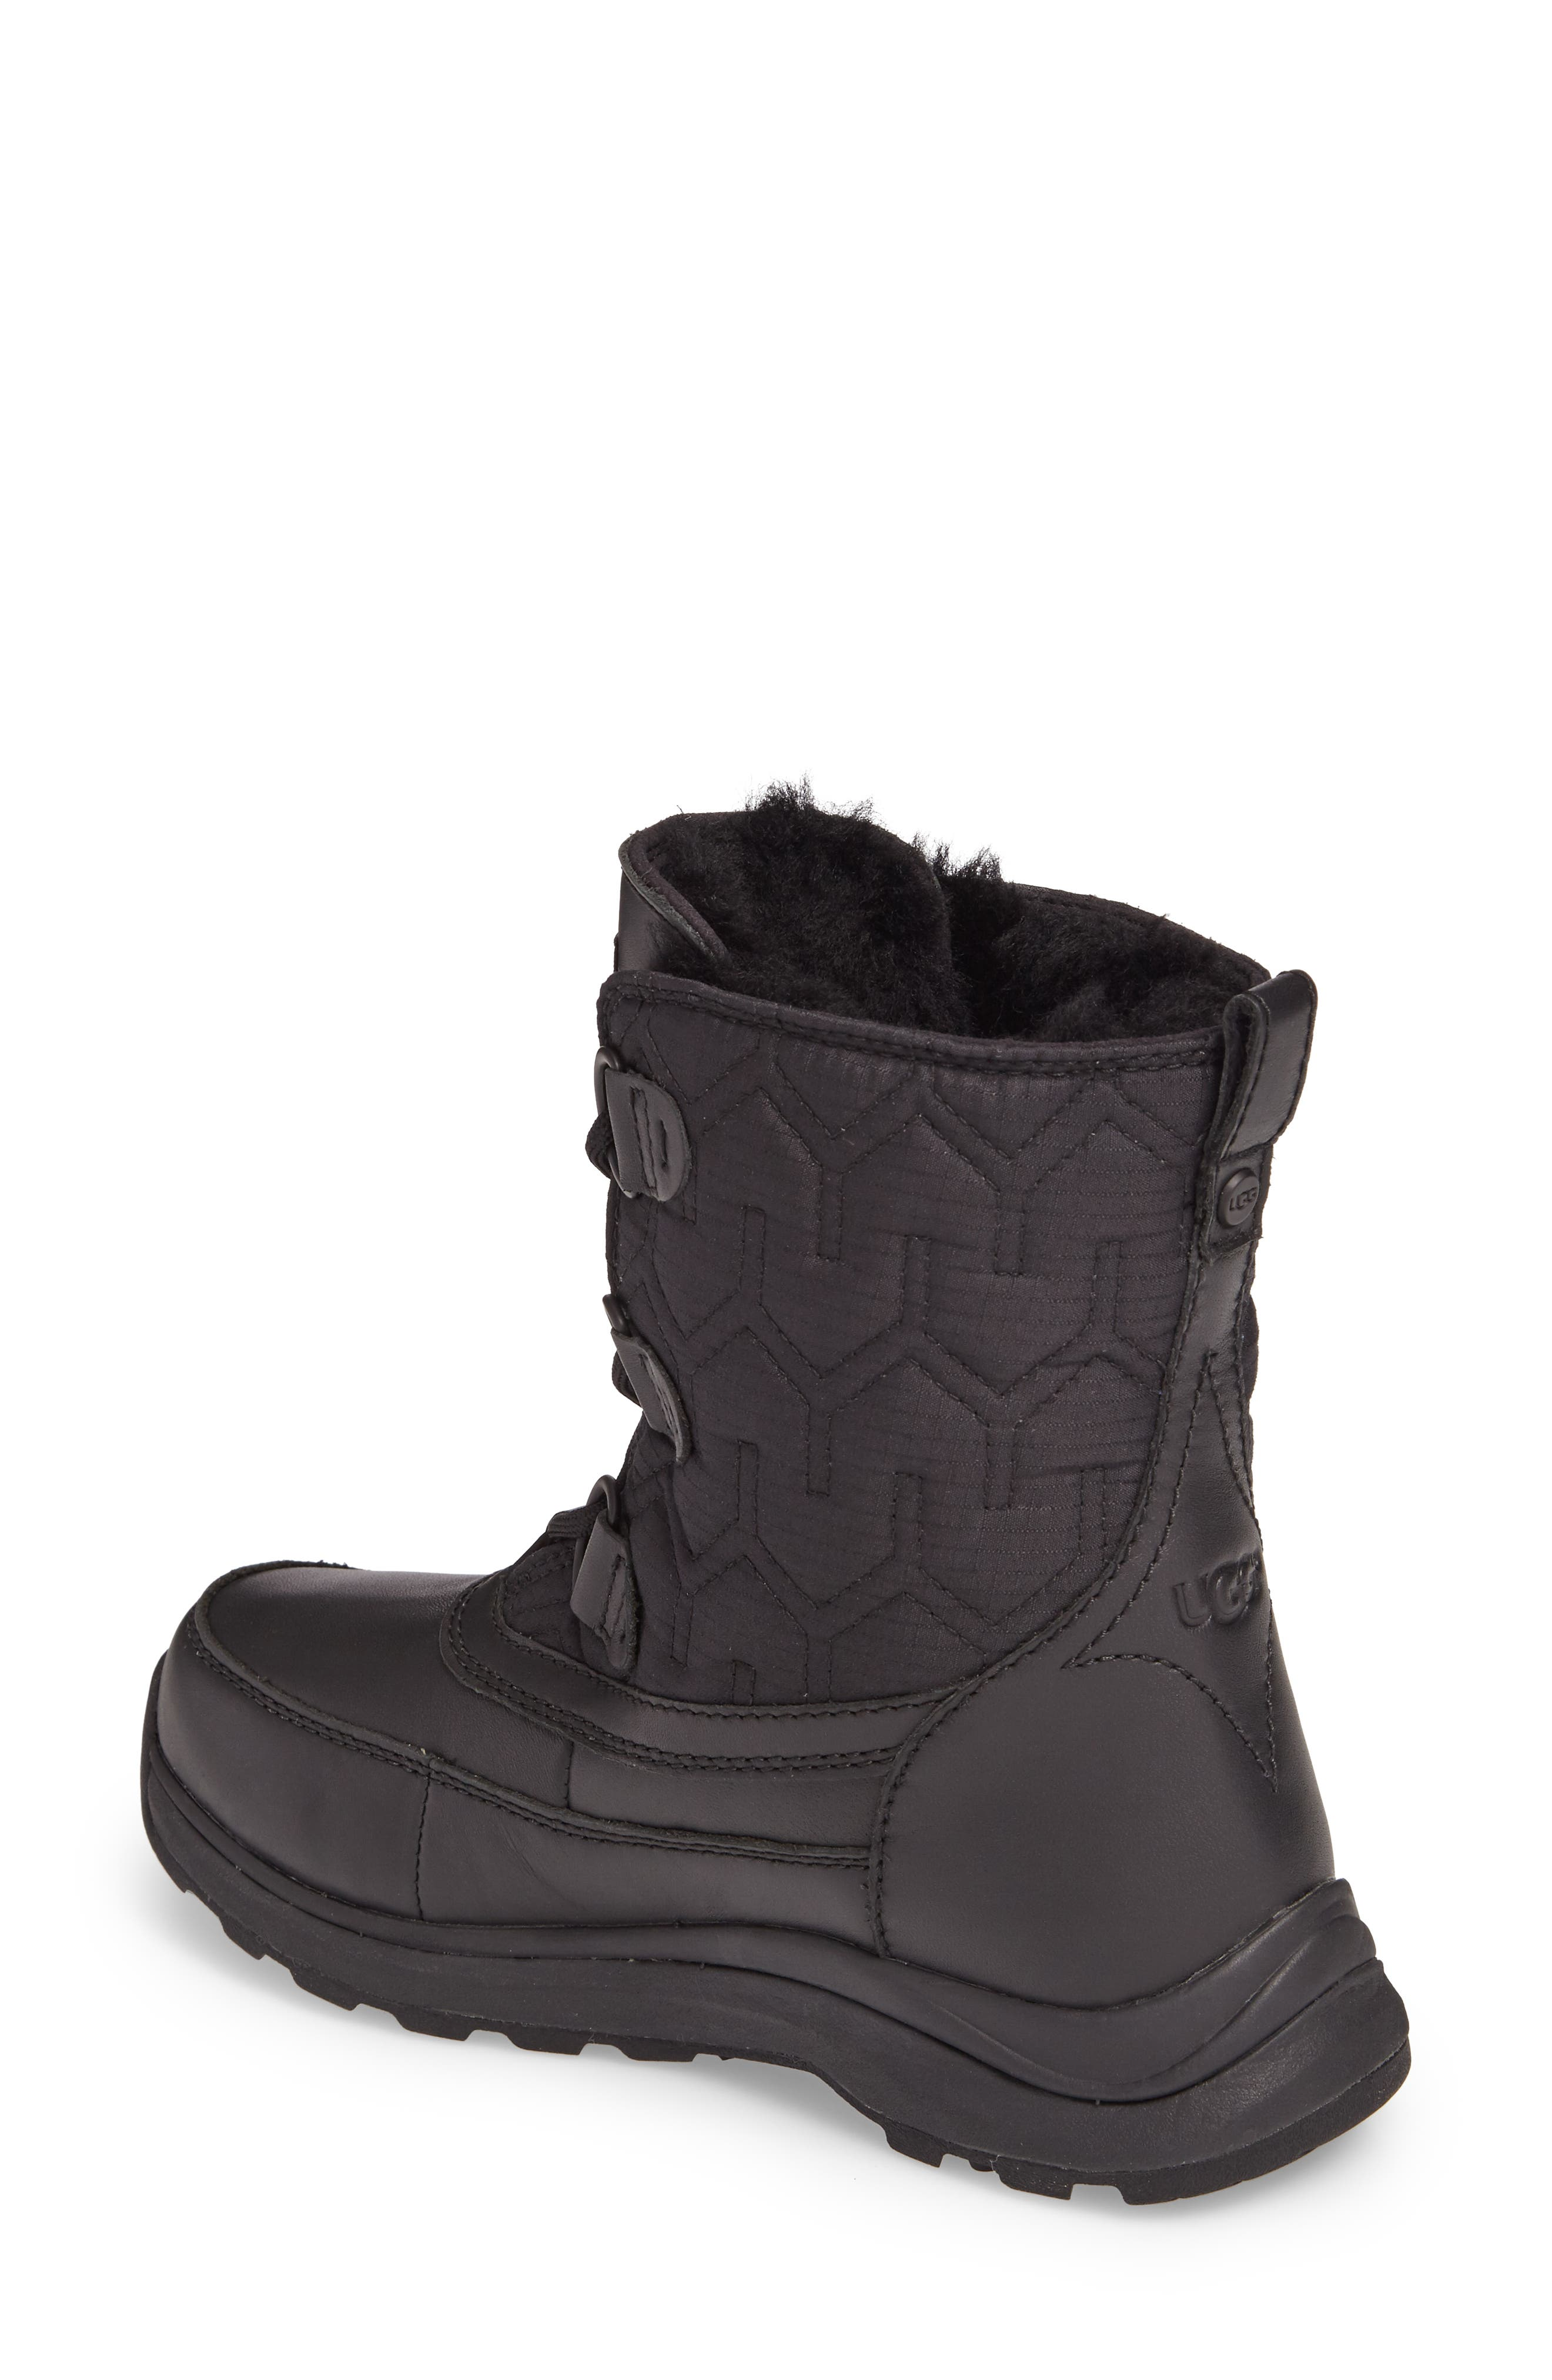 Lachlan Waterproof Insulated Snow Boot,                             Alternate thumbnail 2, color,                             001